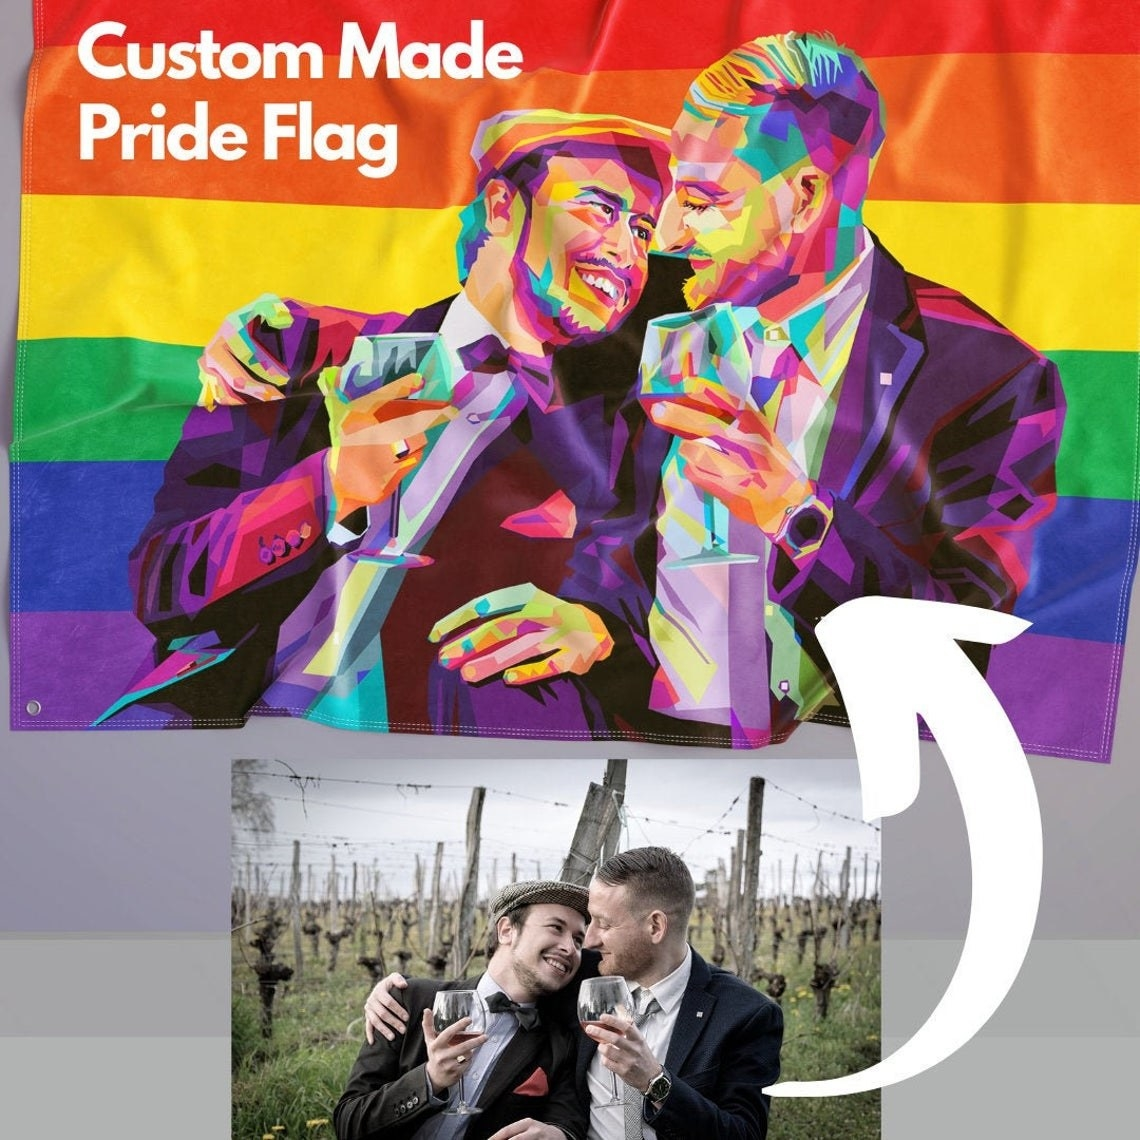 A classic rainbow pride flag with a multi-colored couple on the front. The image shows the picture of a couple used for reference when making the flag.